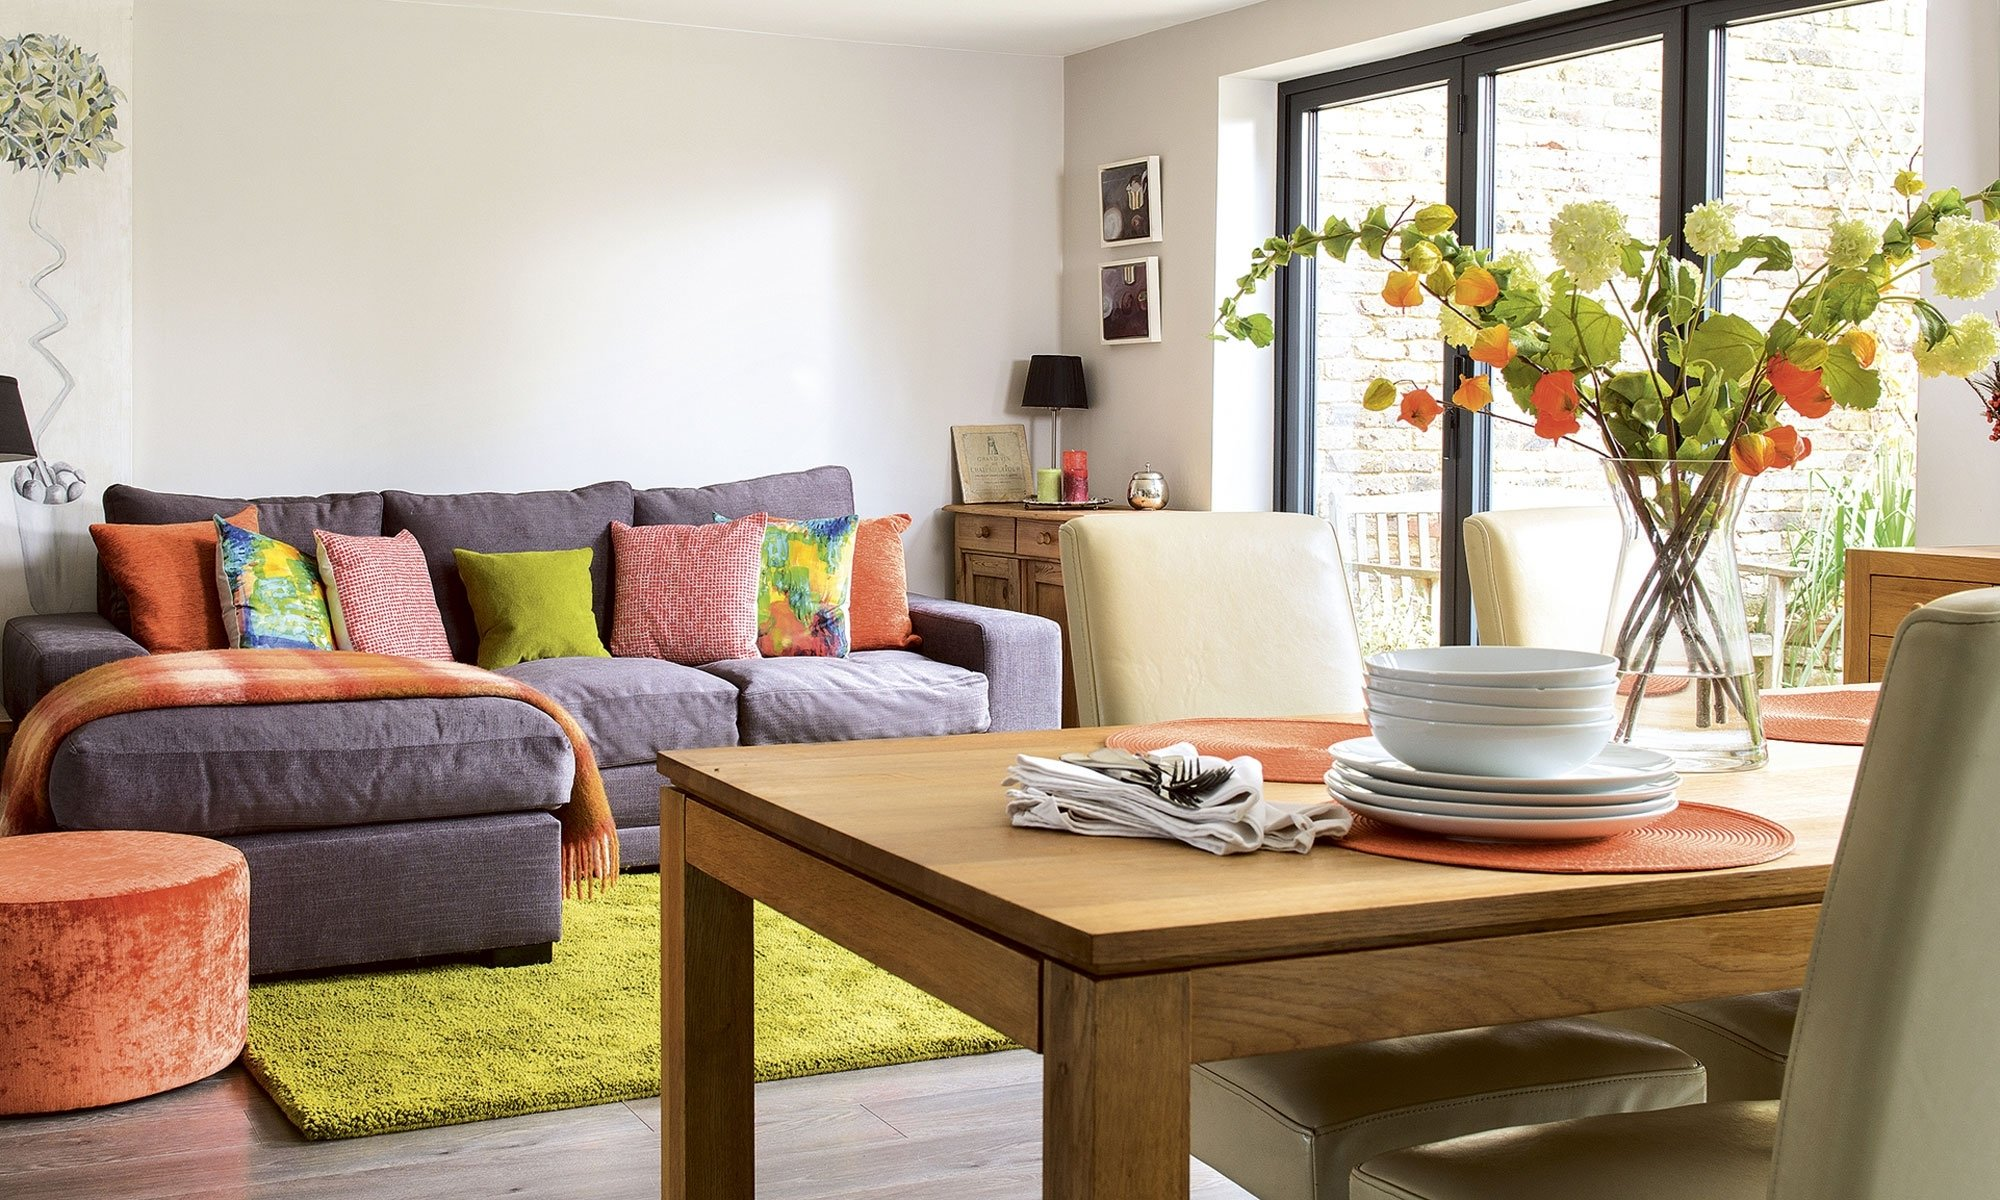 10 Attractive Ideas For Living Room Decor open plan living room ideas to inspire you ideal home 2020